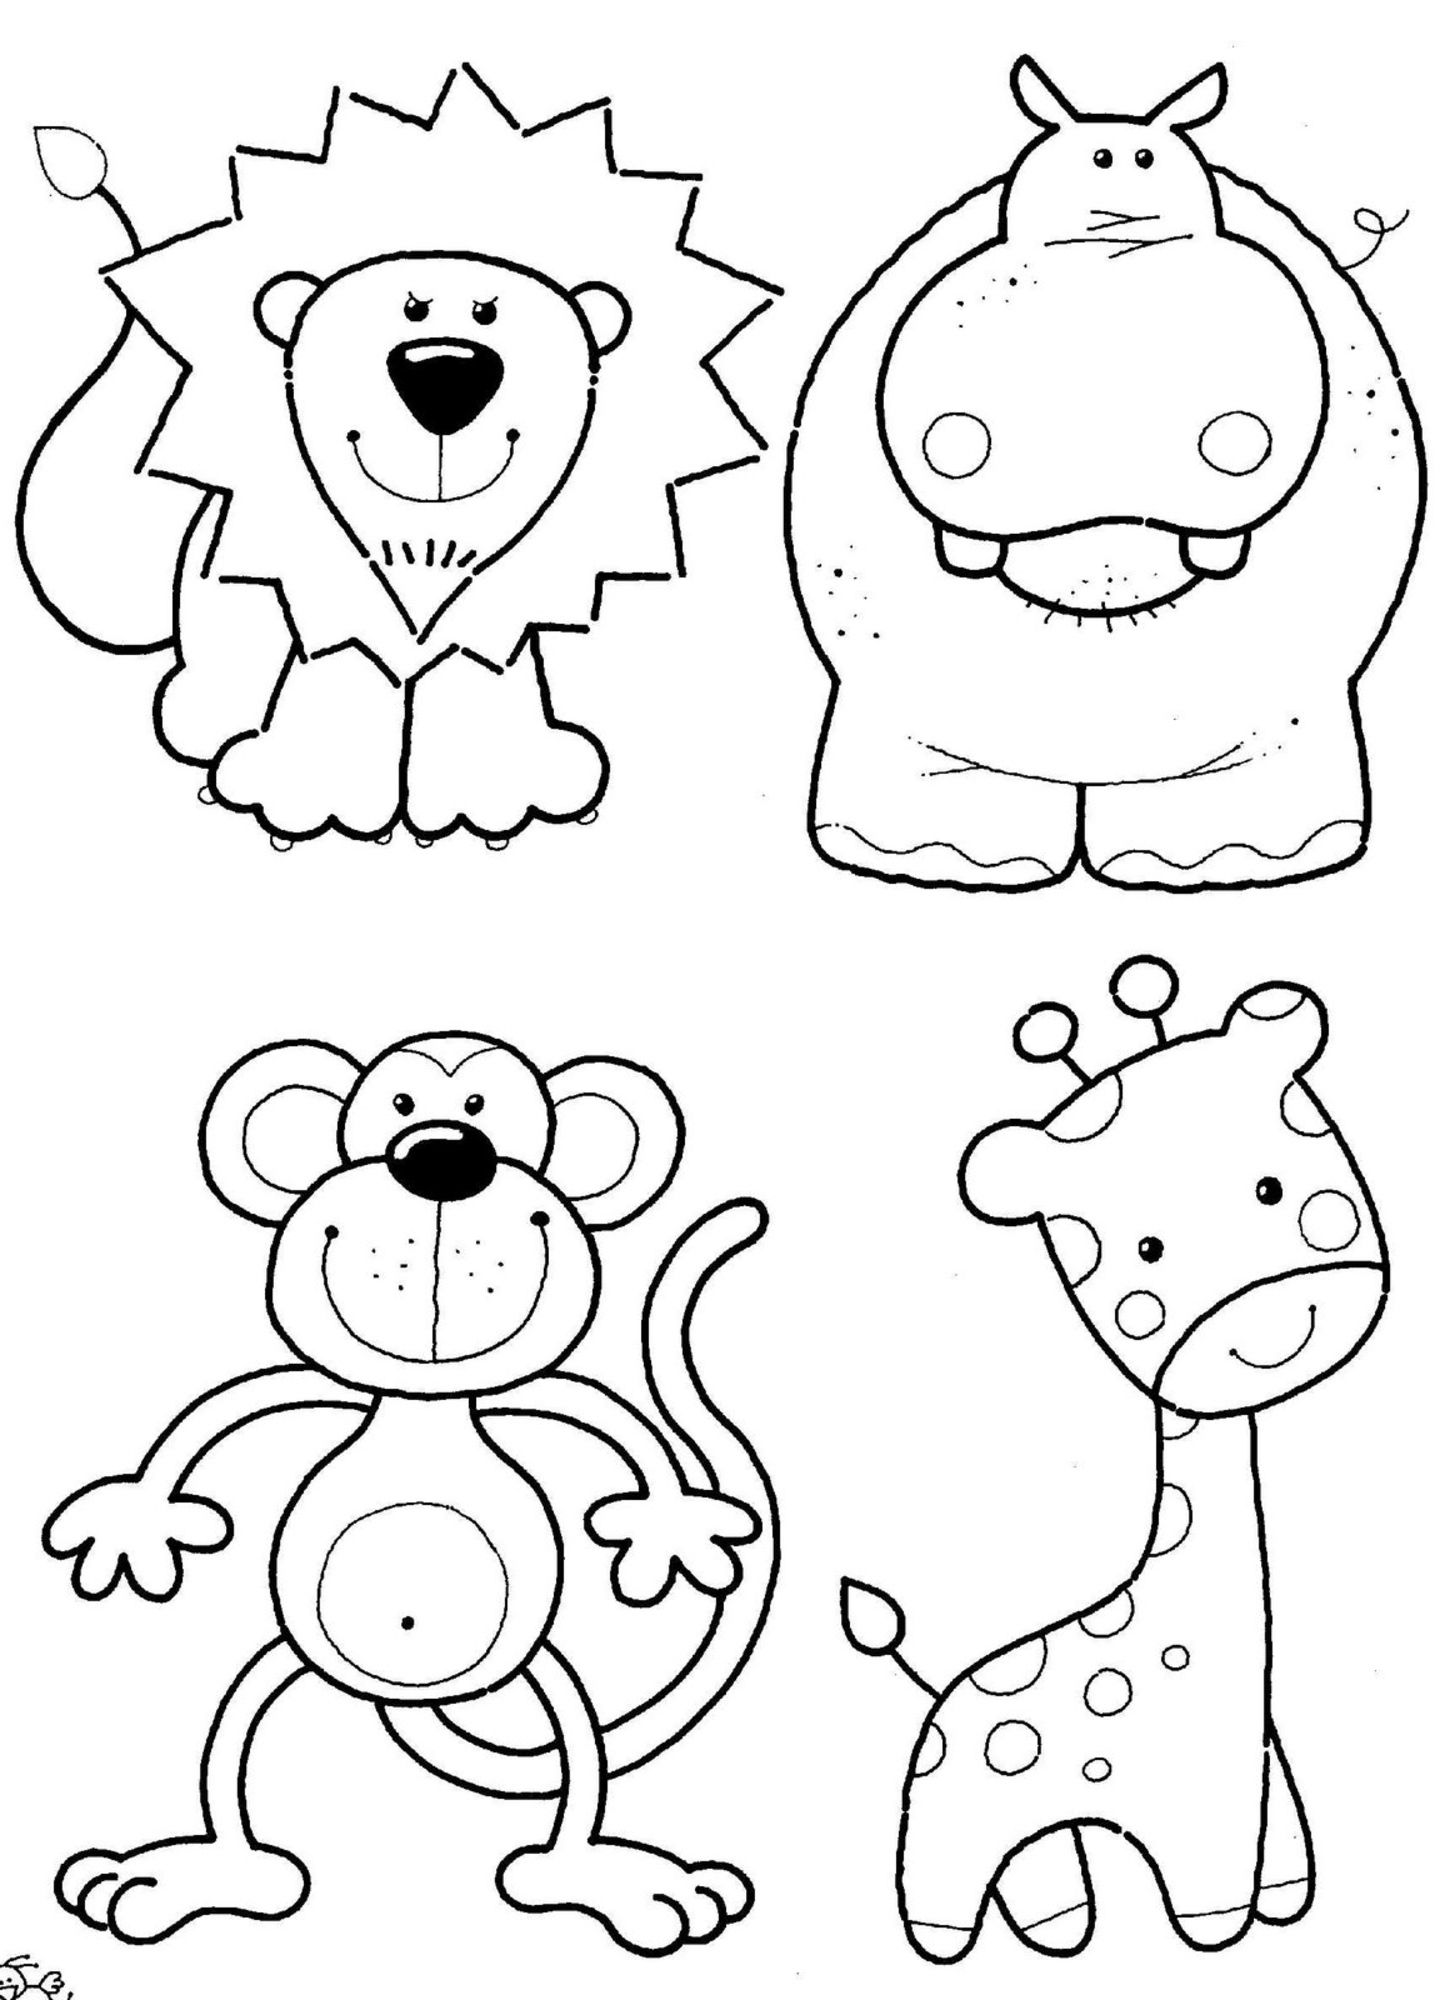 animals for baby quilt | Let Them Color! | Pinterest | Molde, Dibujo ...